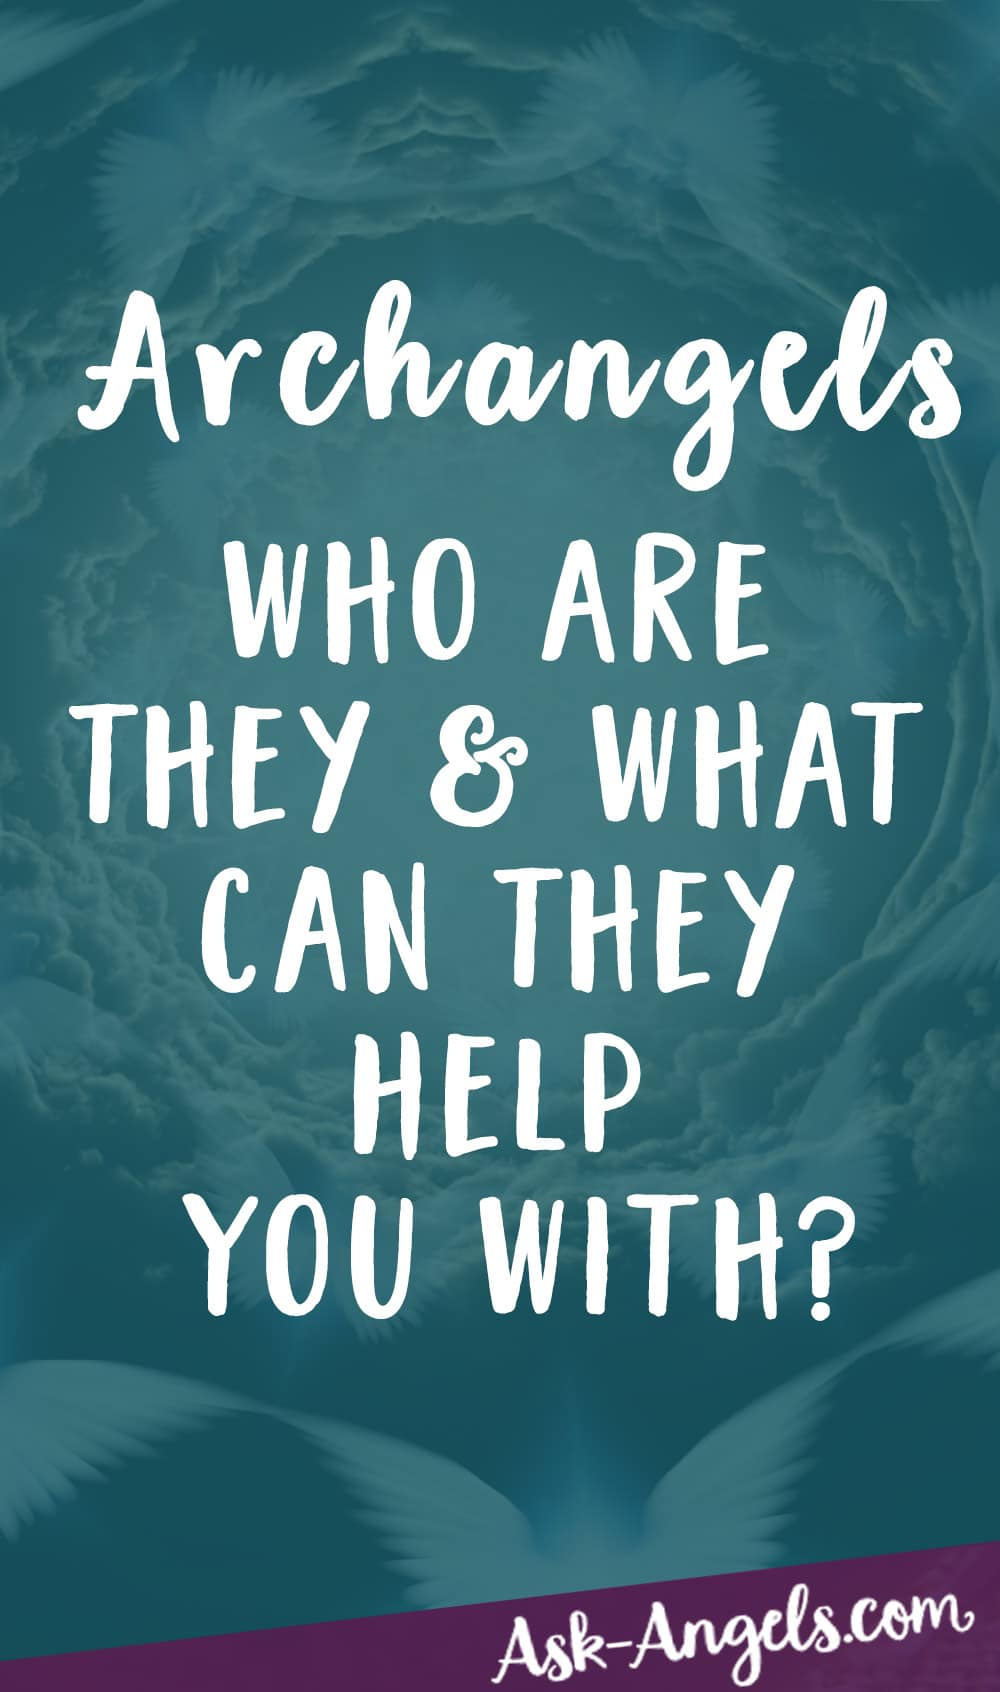 The Archangels - Who Are They?